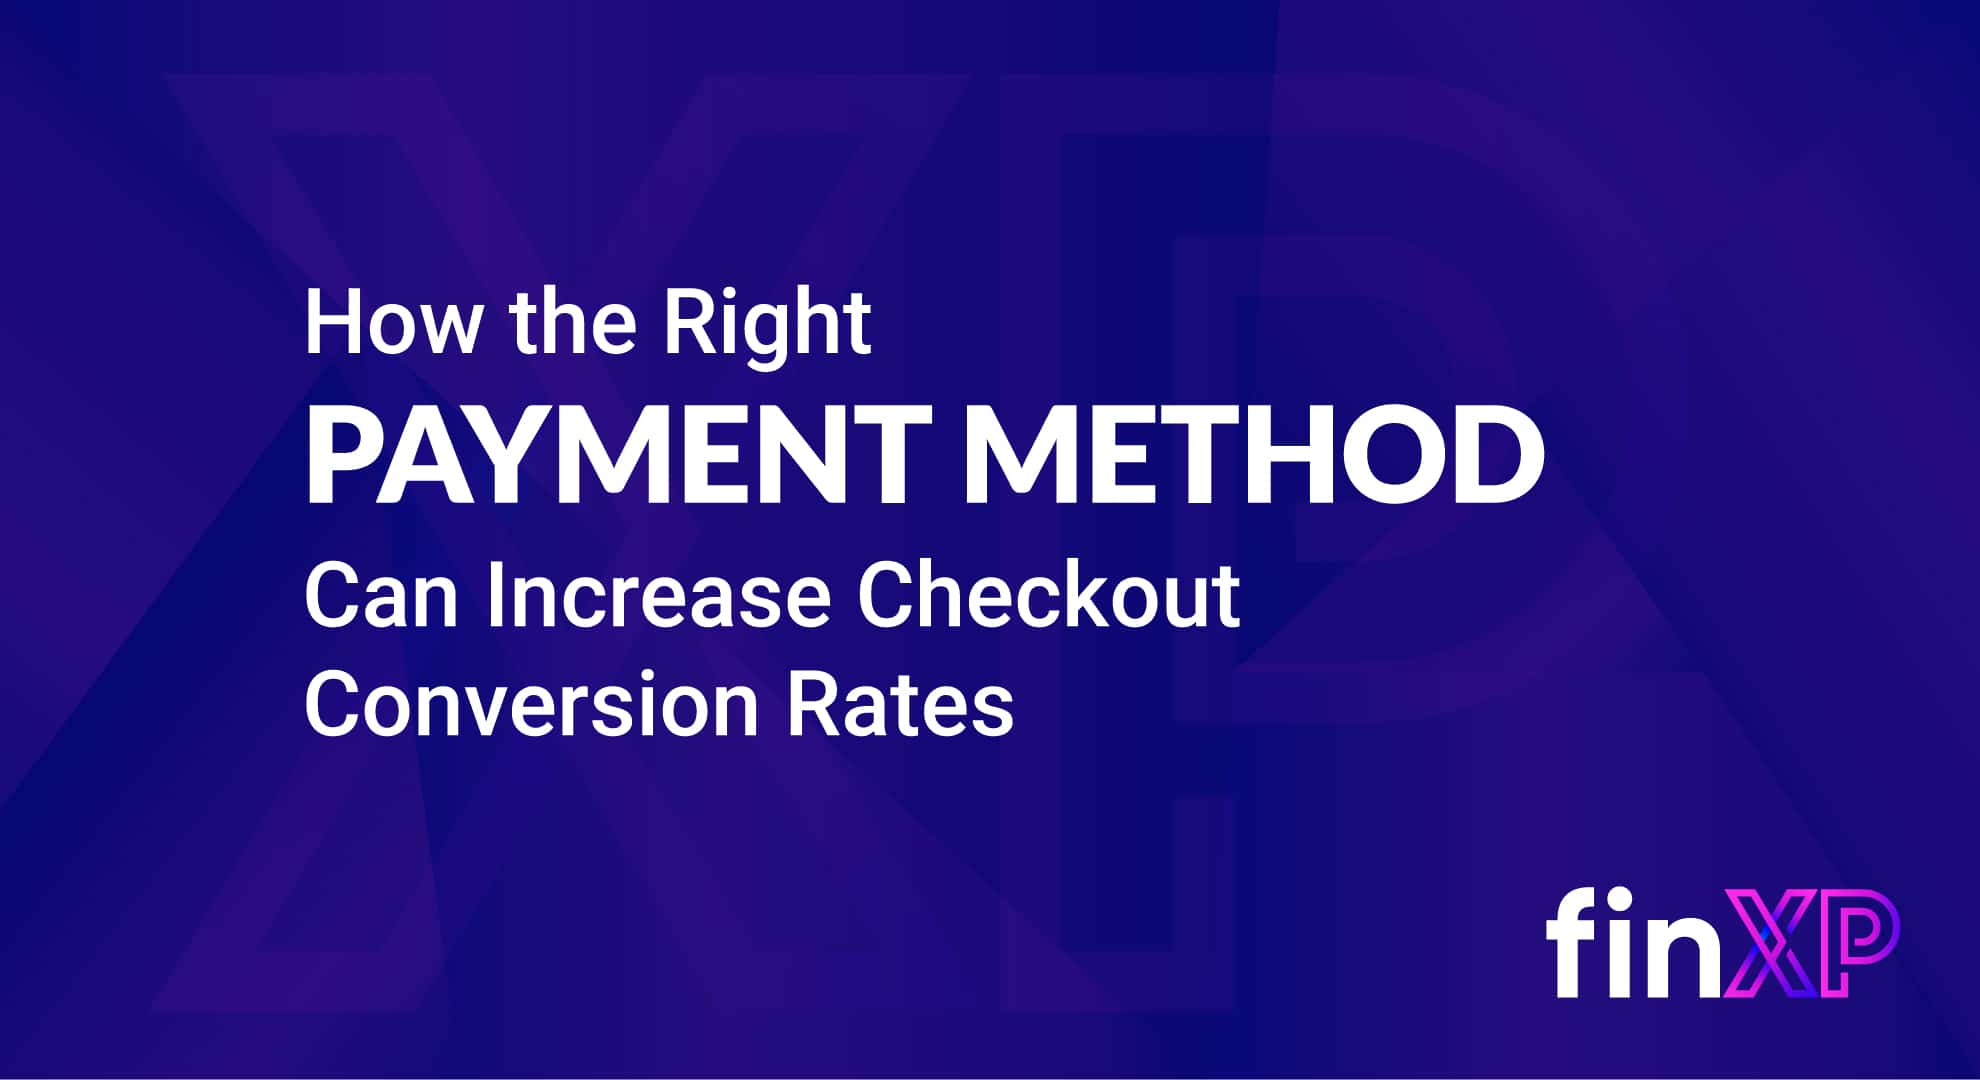 How the Right Payment Methods Can Increase Checkout Conversion Rates